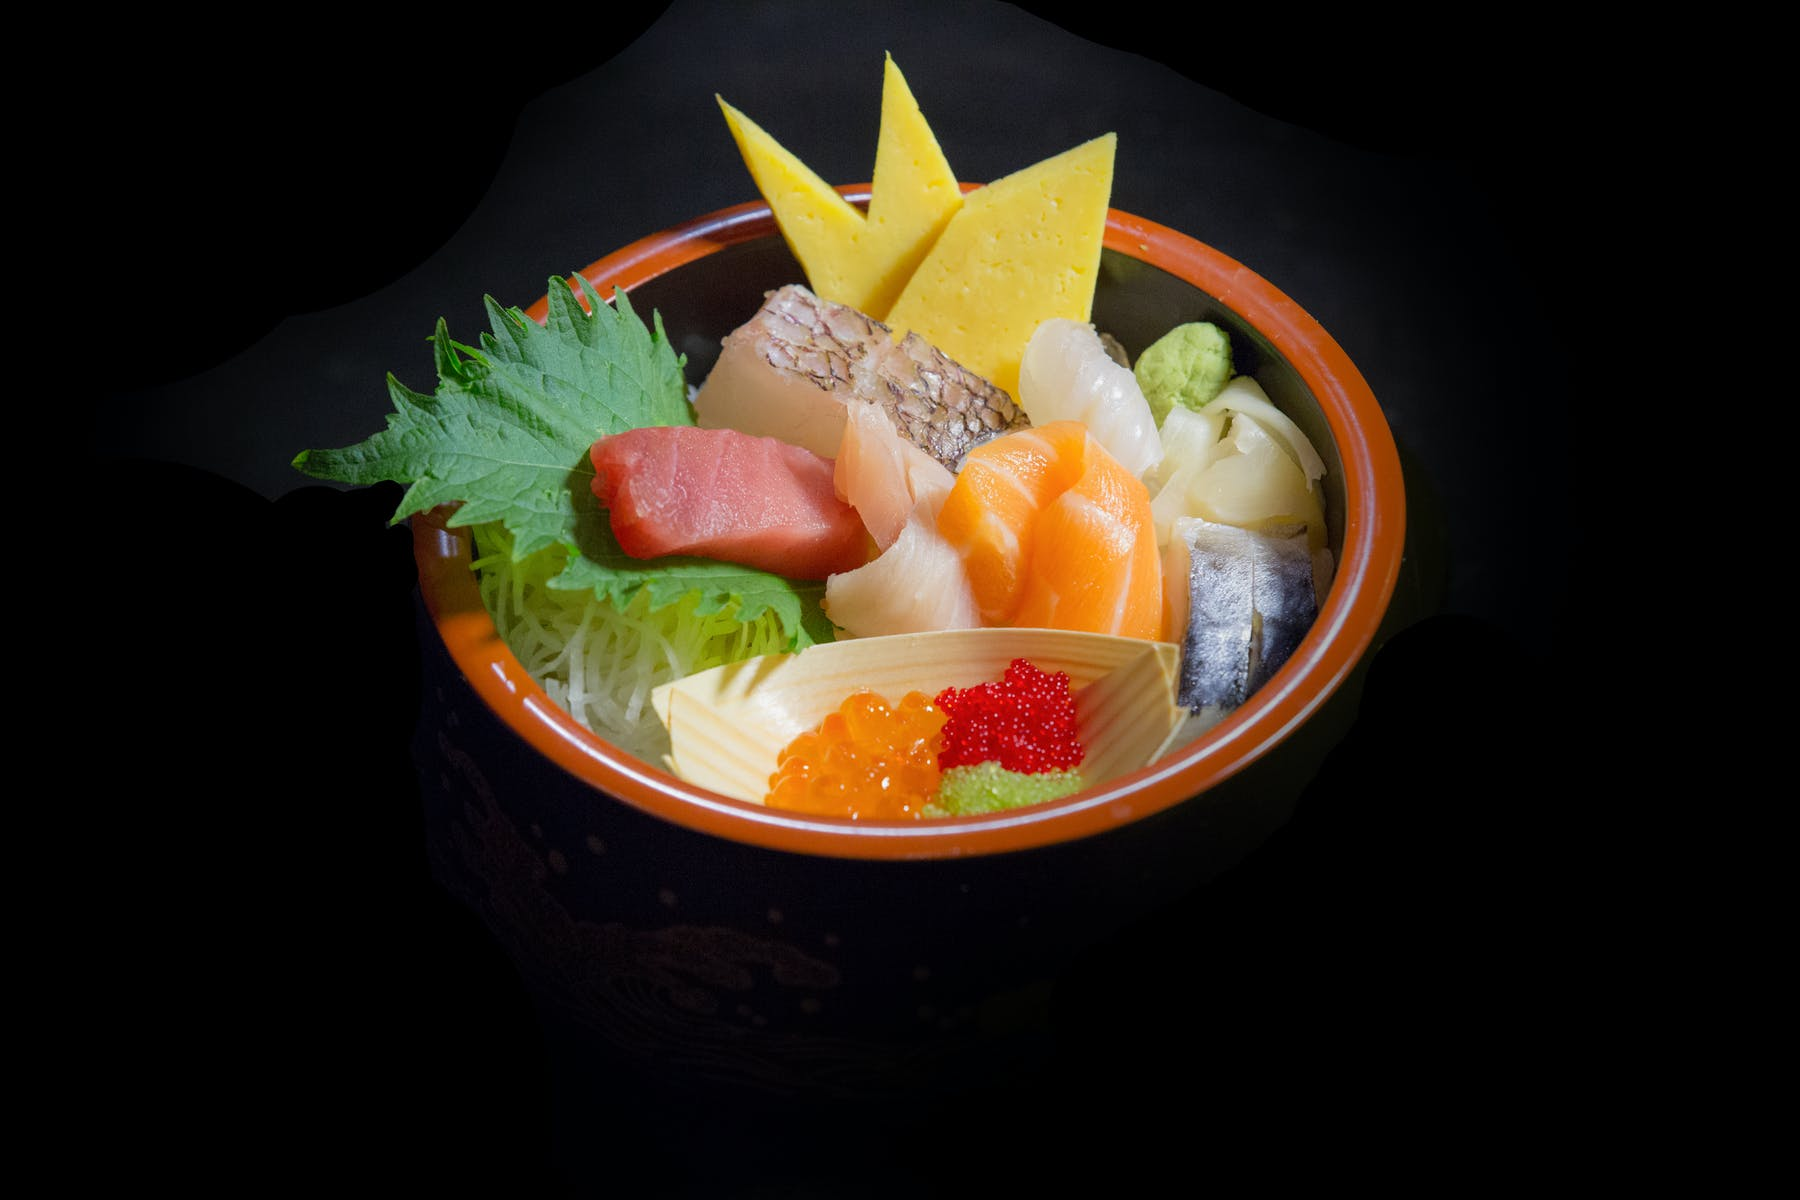 a bowl of fruit and sushi on a plate